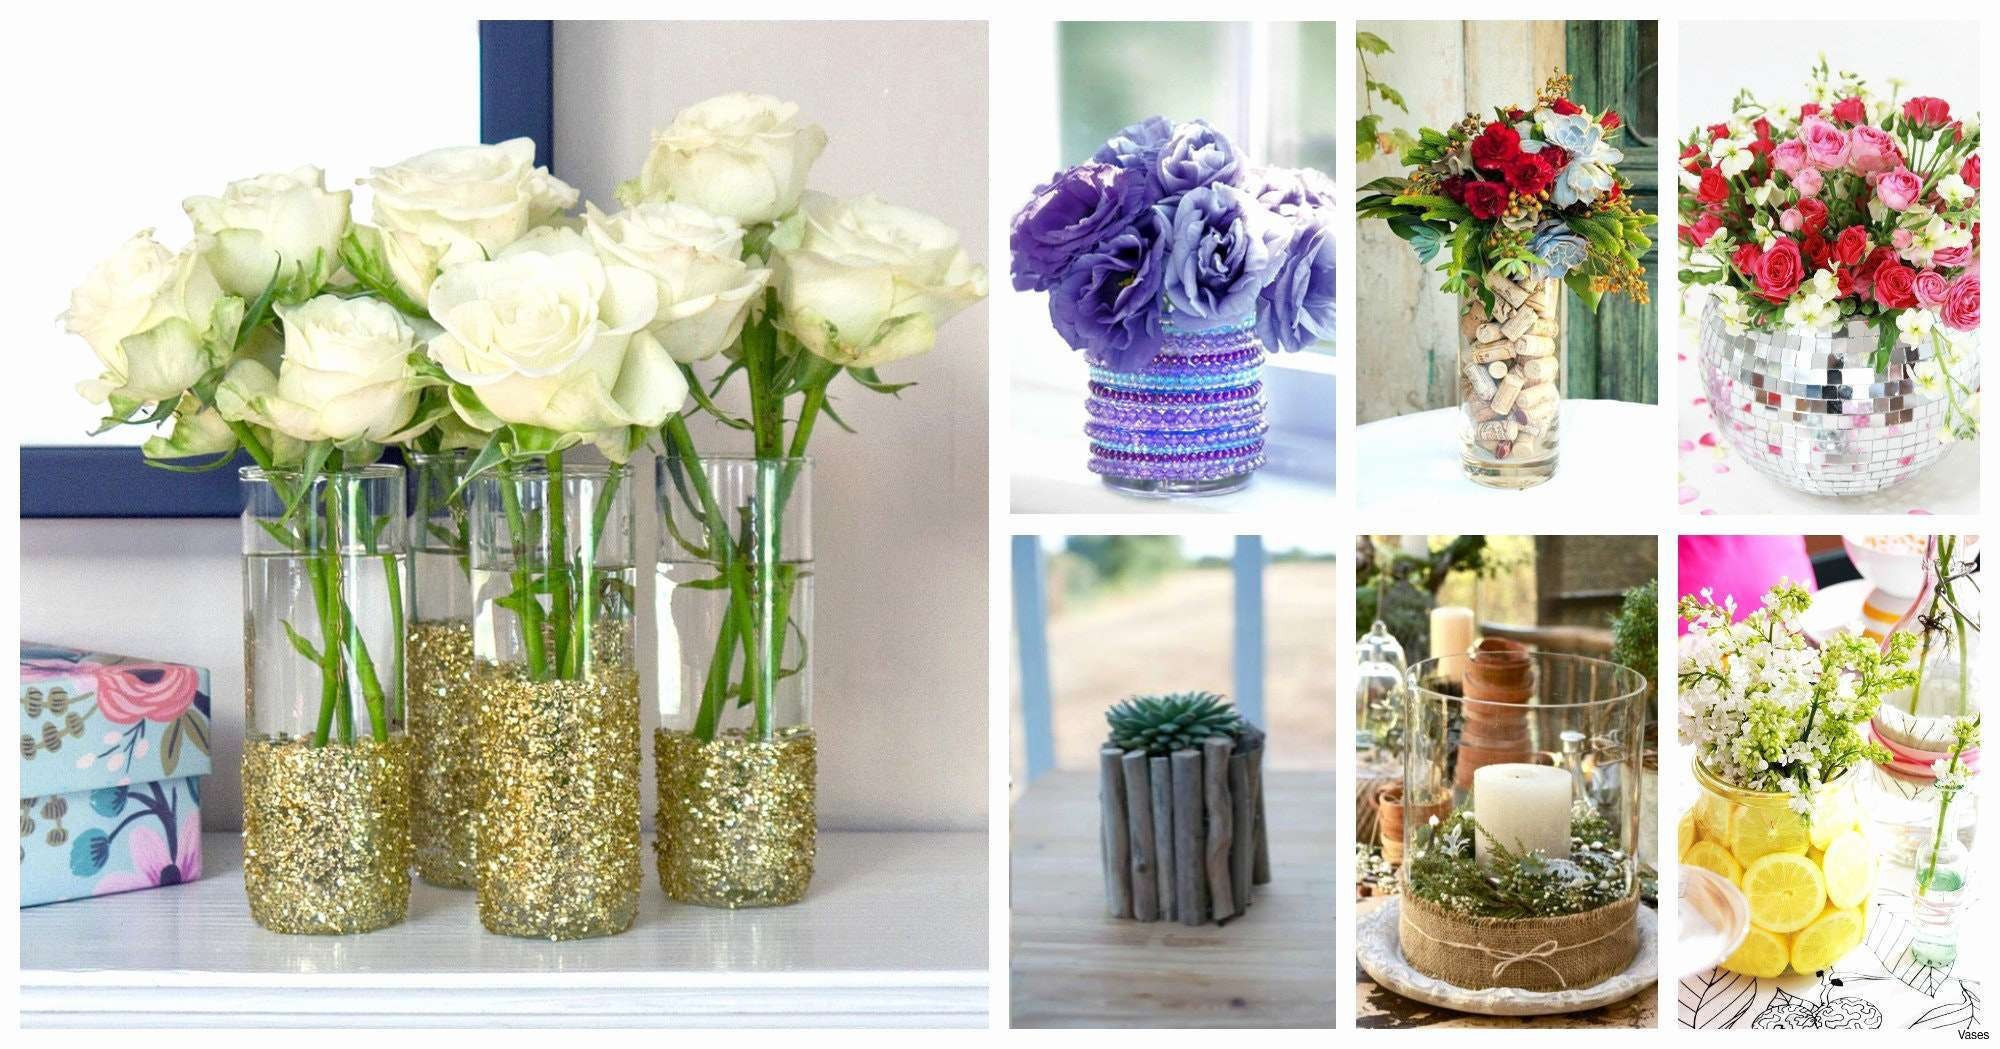 15 Nice White Vases for Sale